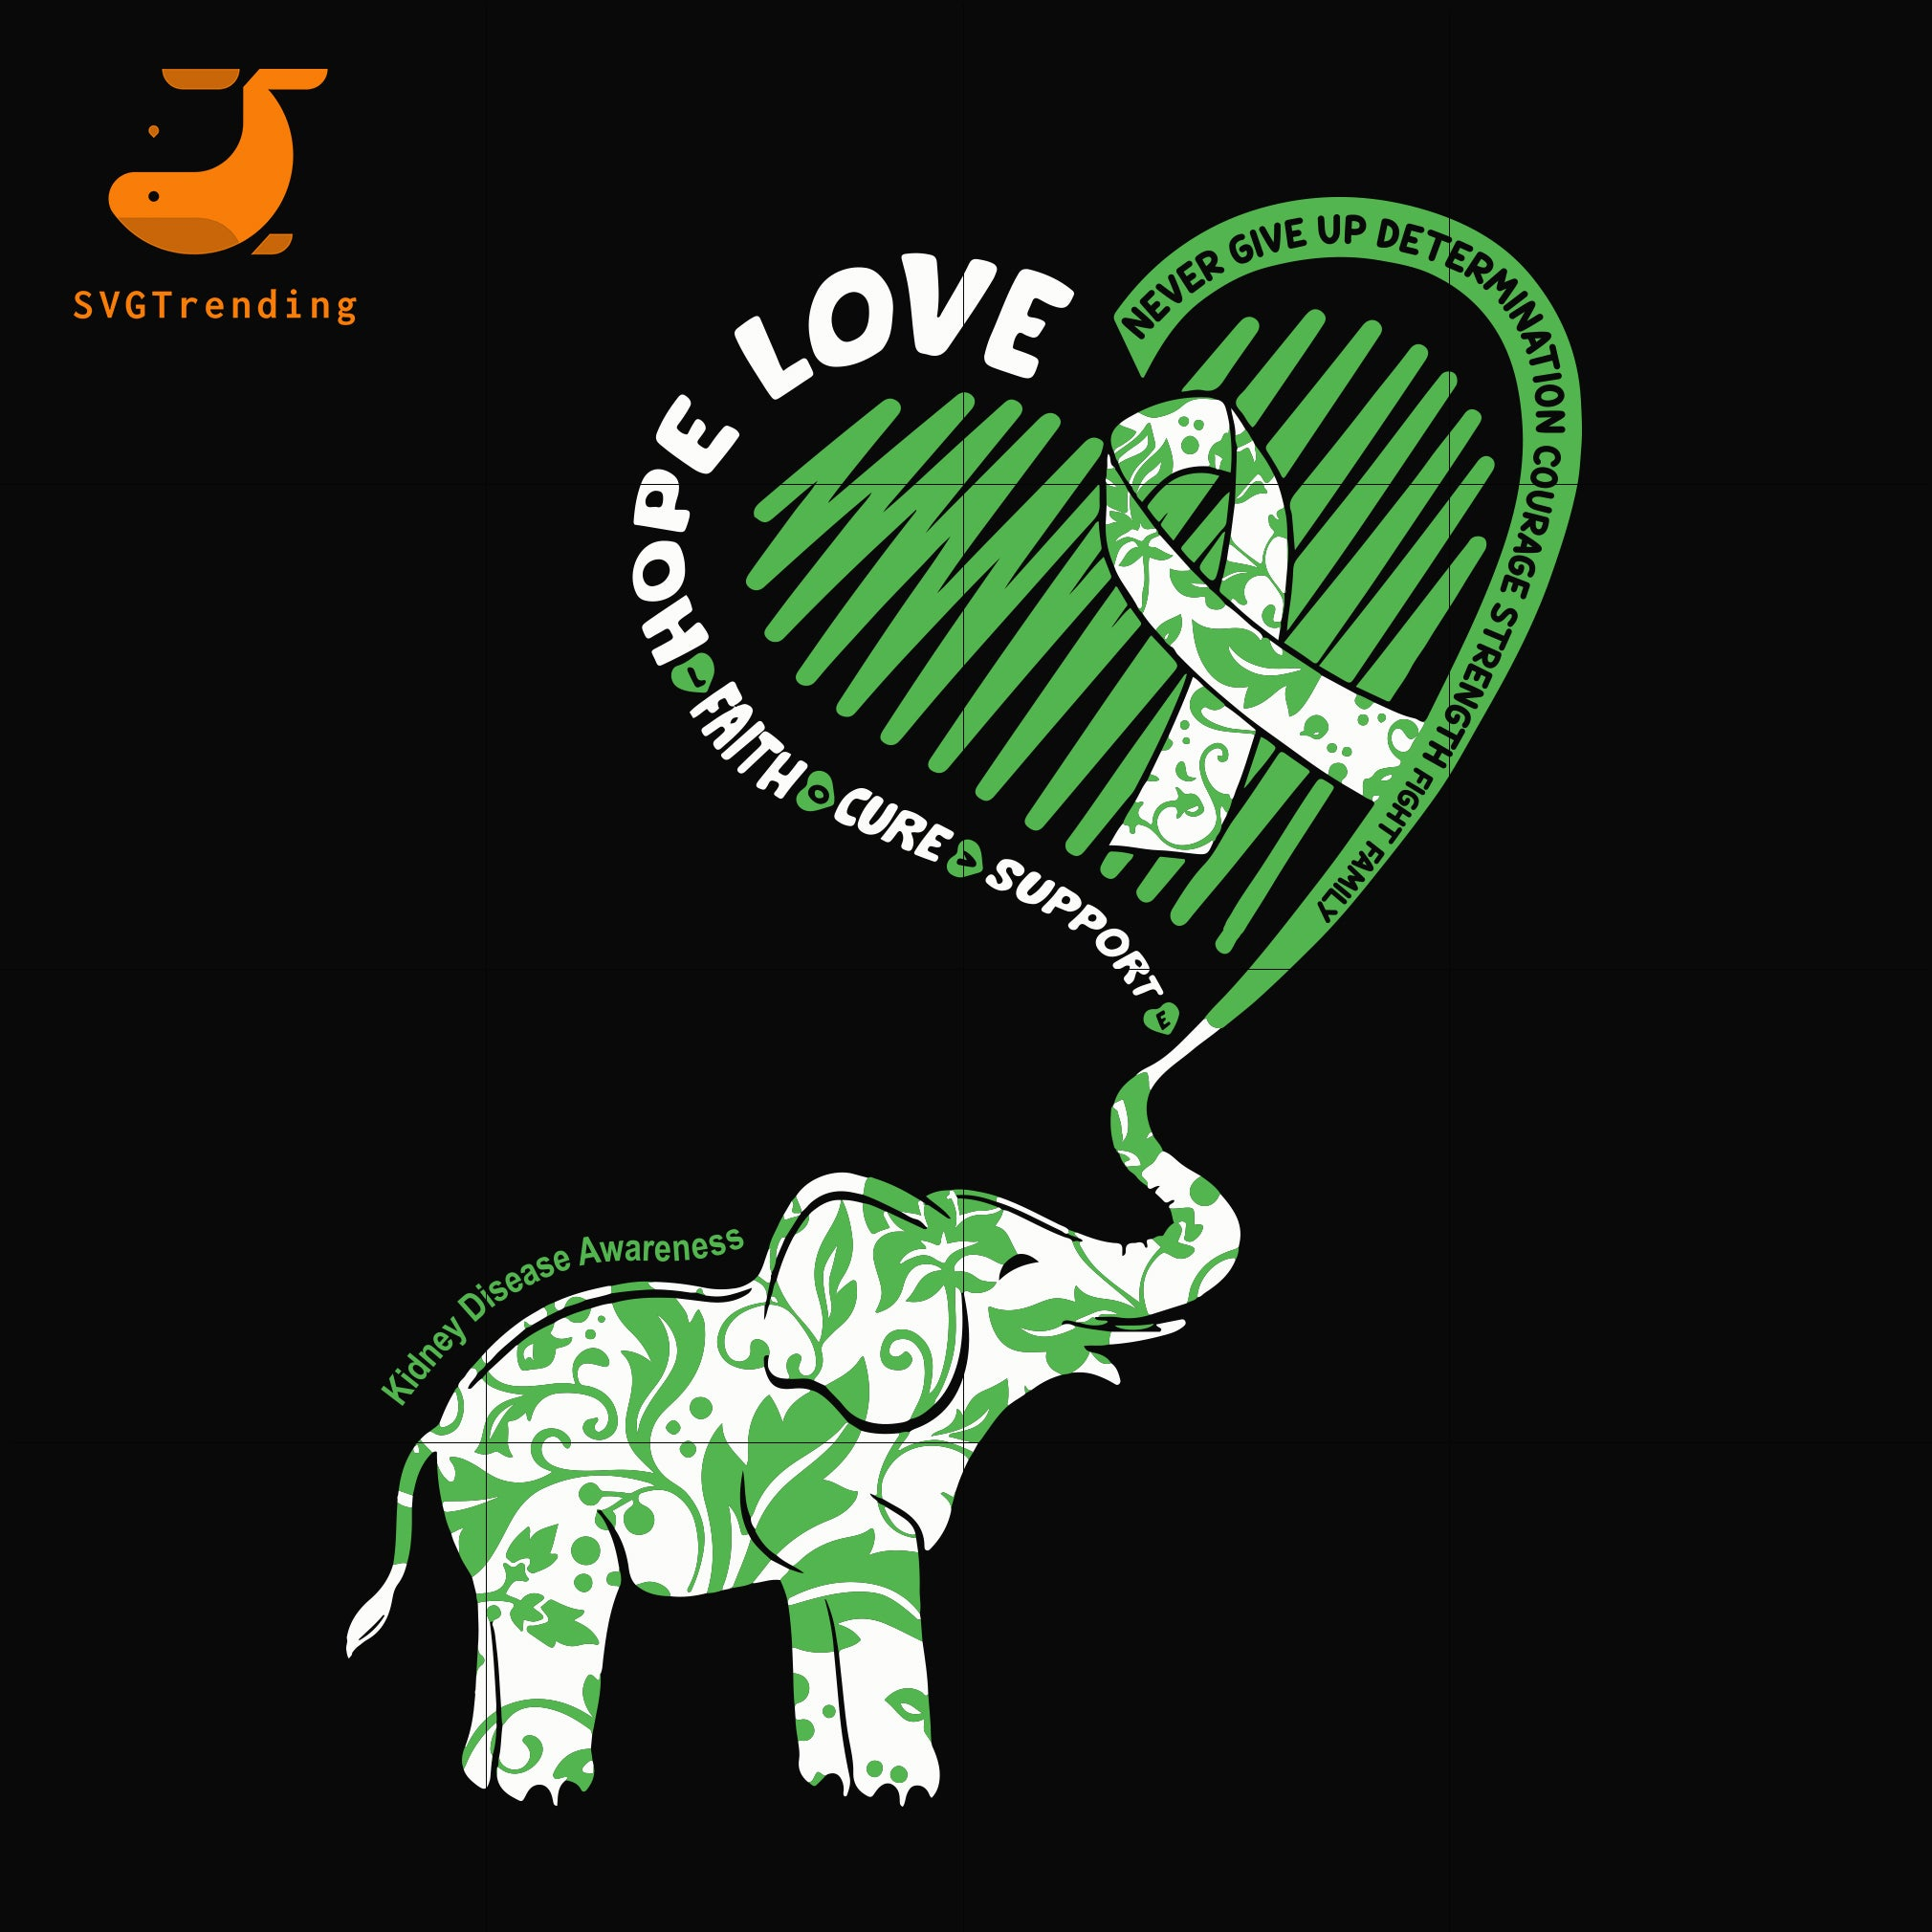 Cute Elephant With Heart Kidney Disease Awareness Svg Png Dxf Eps D Svgtrending